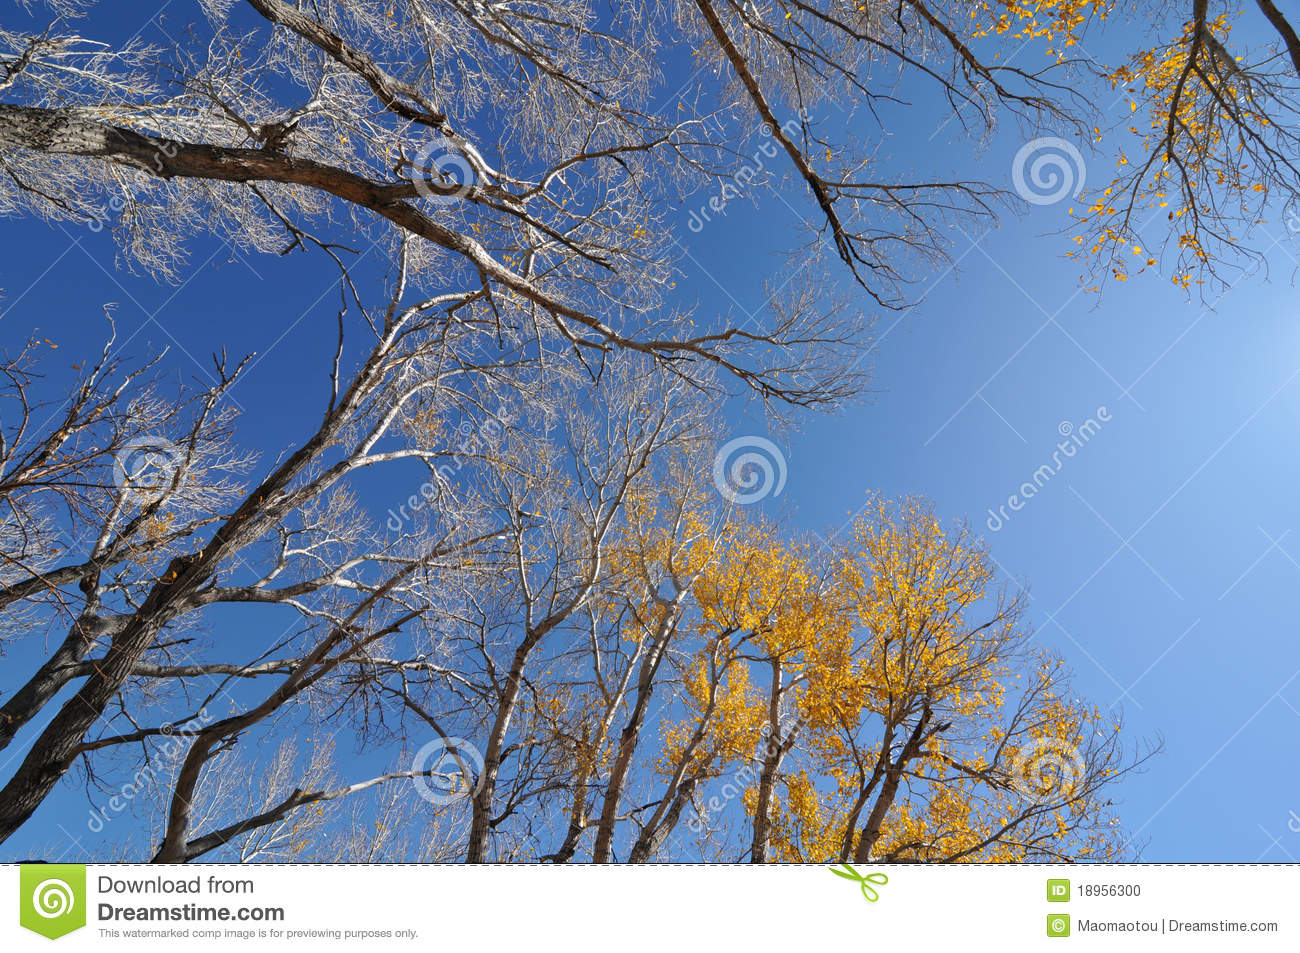 Golden leaves fighting against pure blue sky location golden colorado